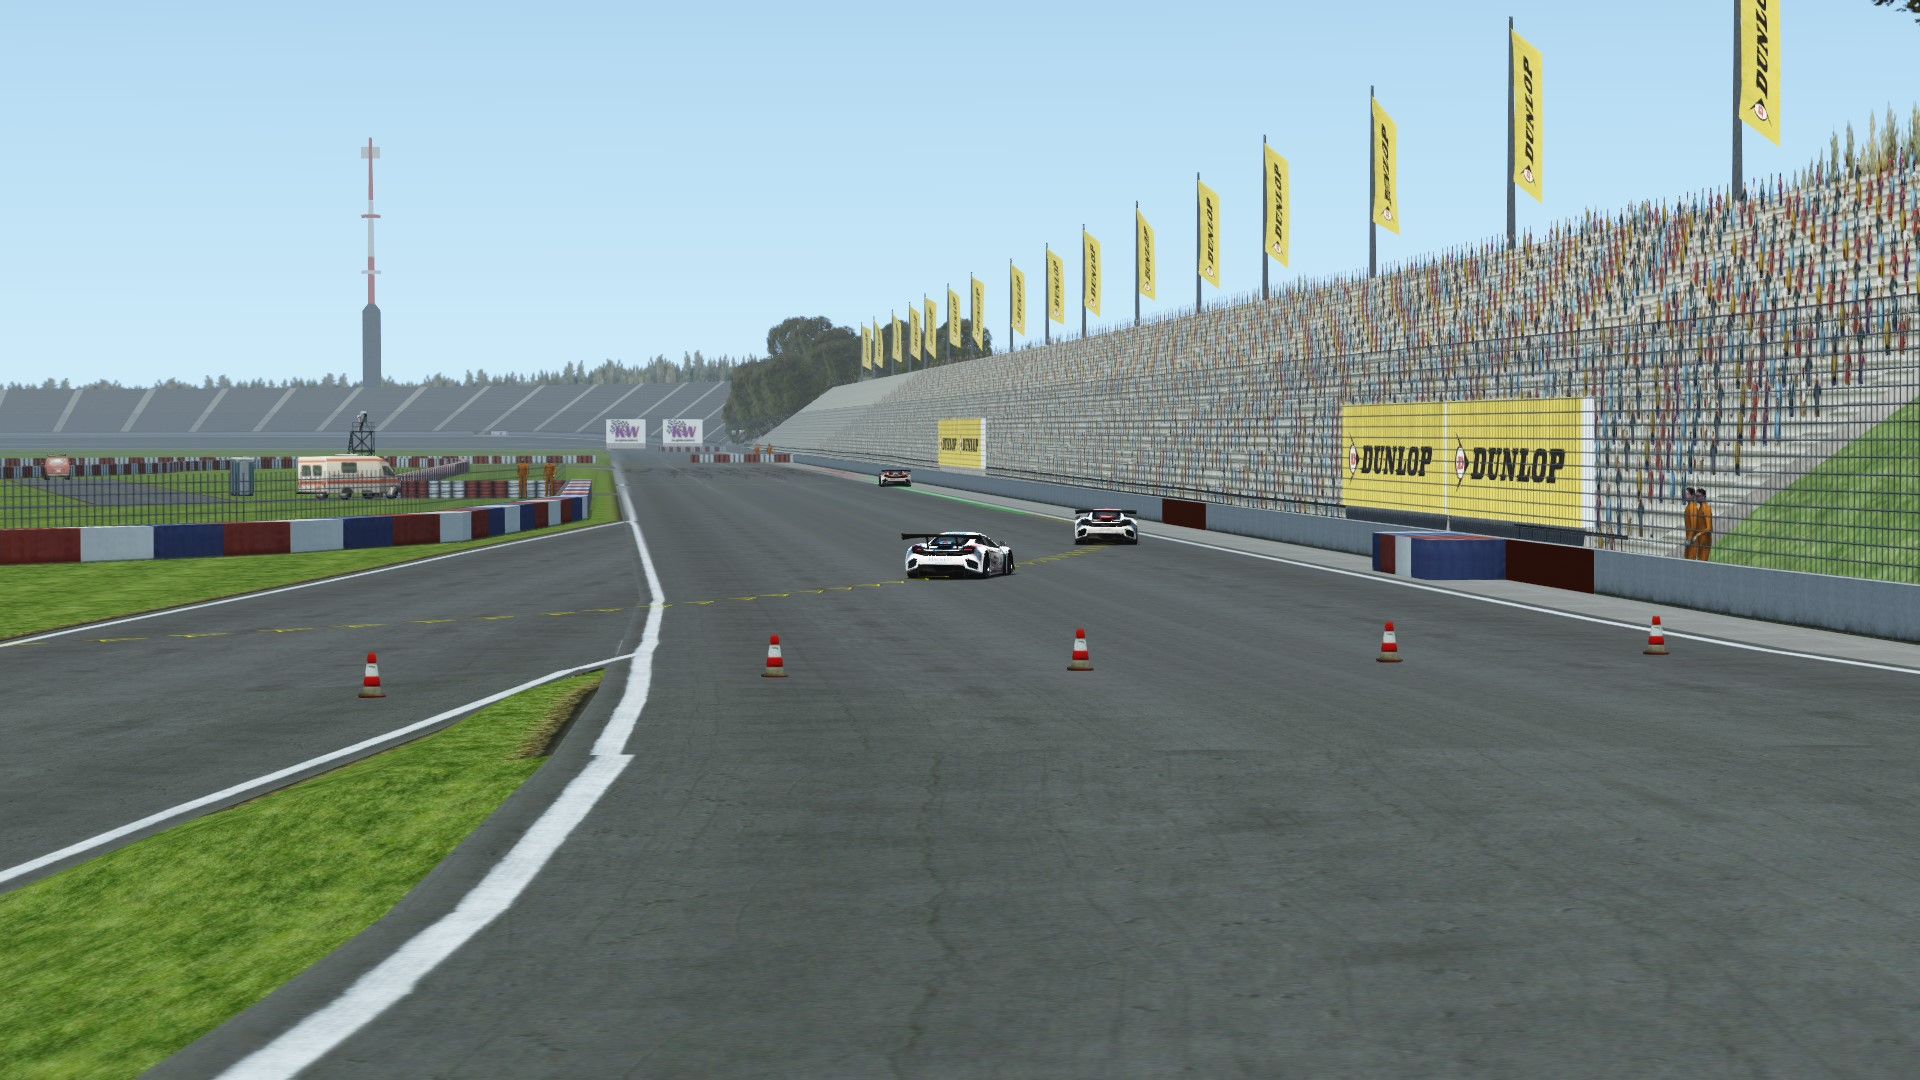 Screenshot_mclaren_mp412c_gt3_eurospeedwaygp_23-8-115-20-39-0.jpg